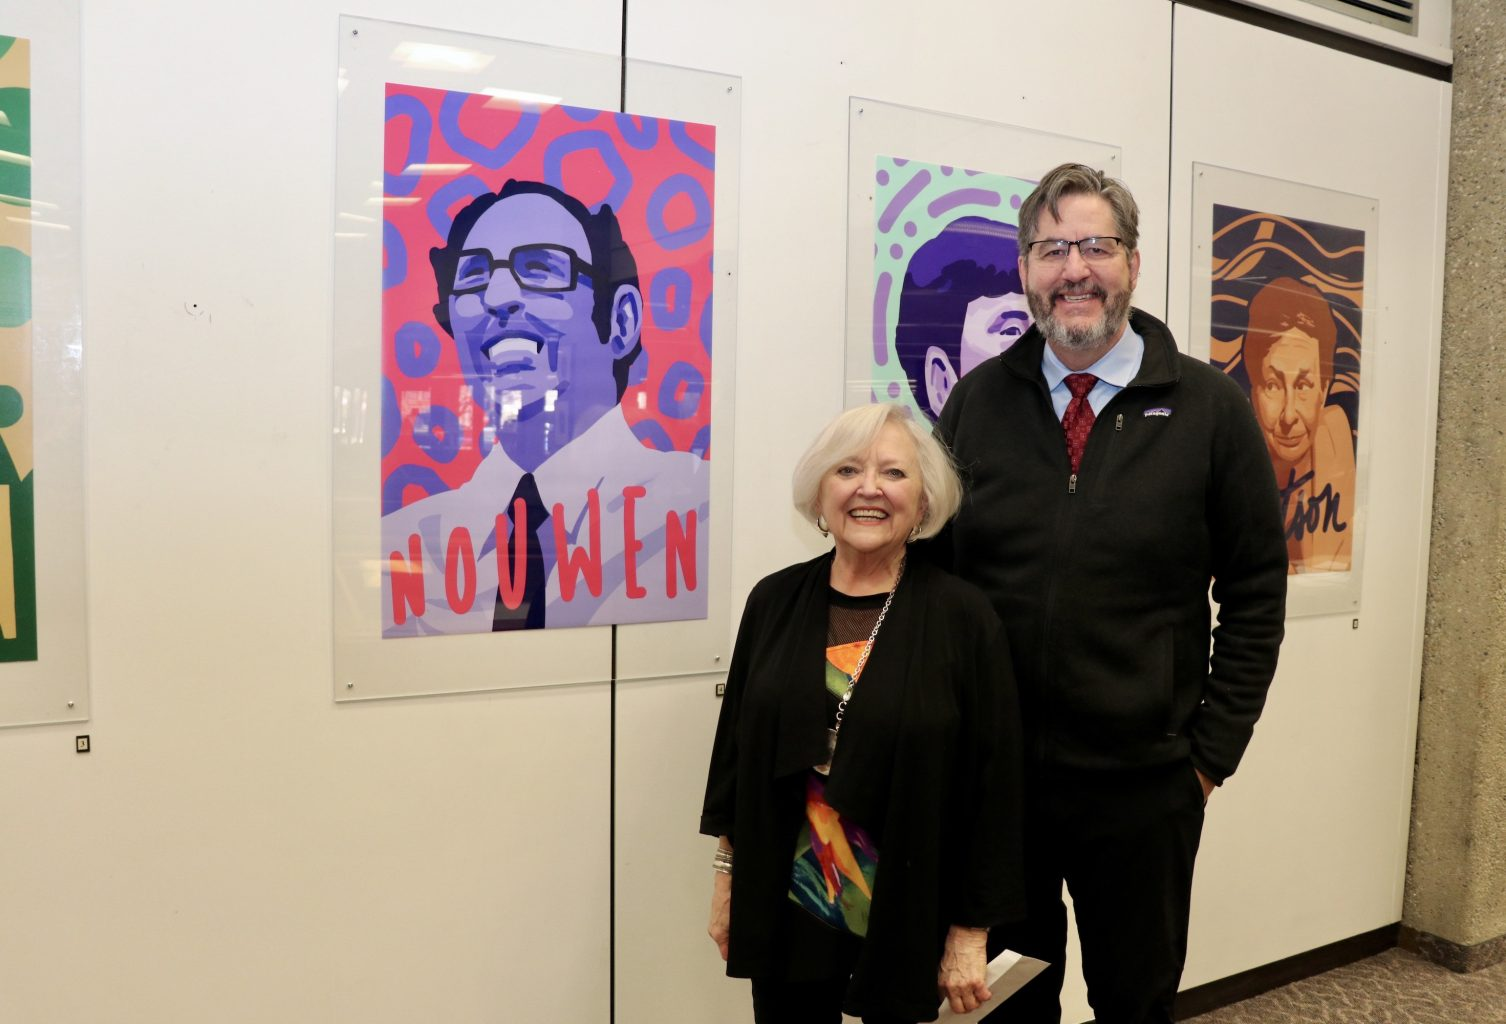 Photograph of Karen Pascal and David Sylvester, smiling, in front of an illustration of Henri Nouwen on a Kelly Library wall.